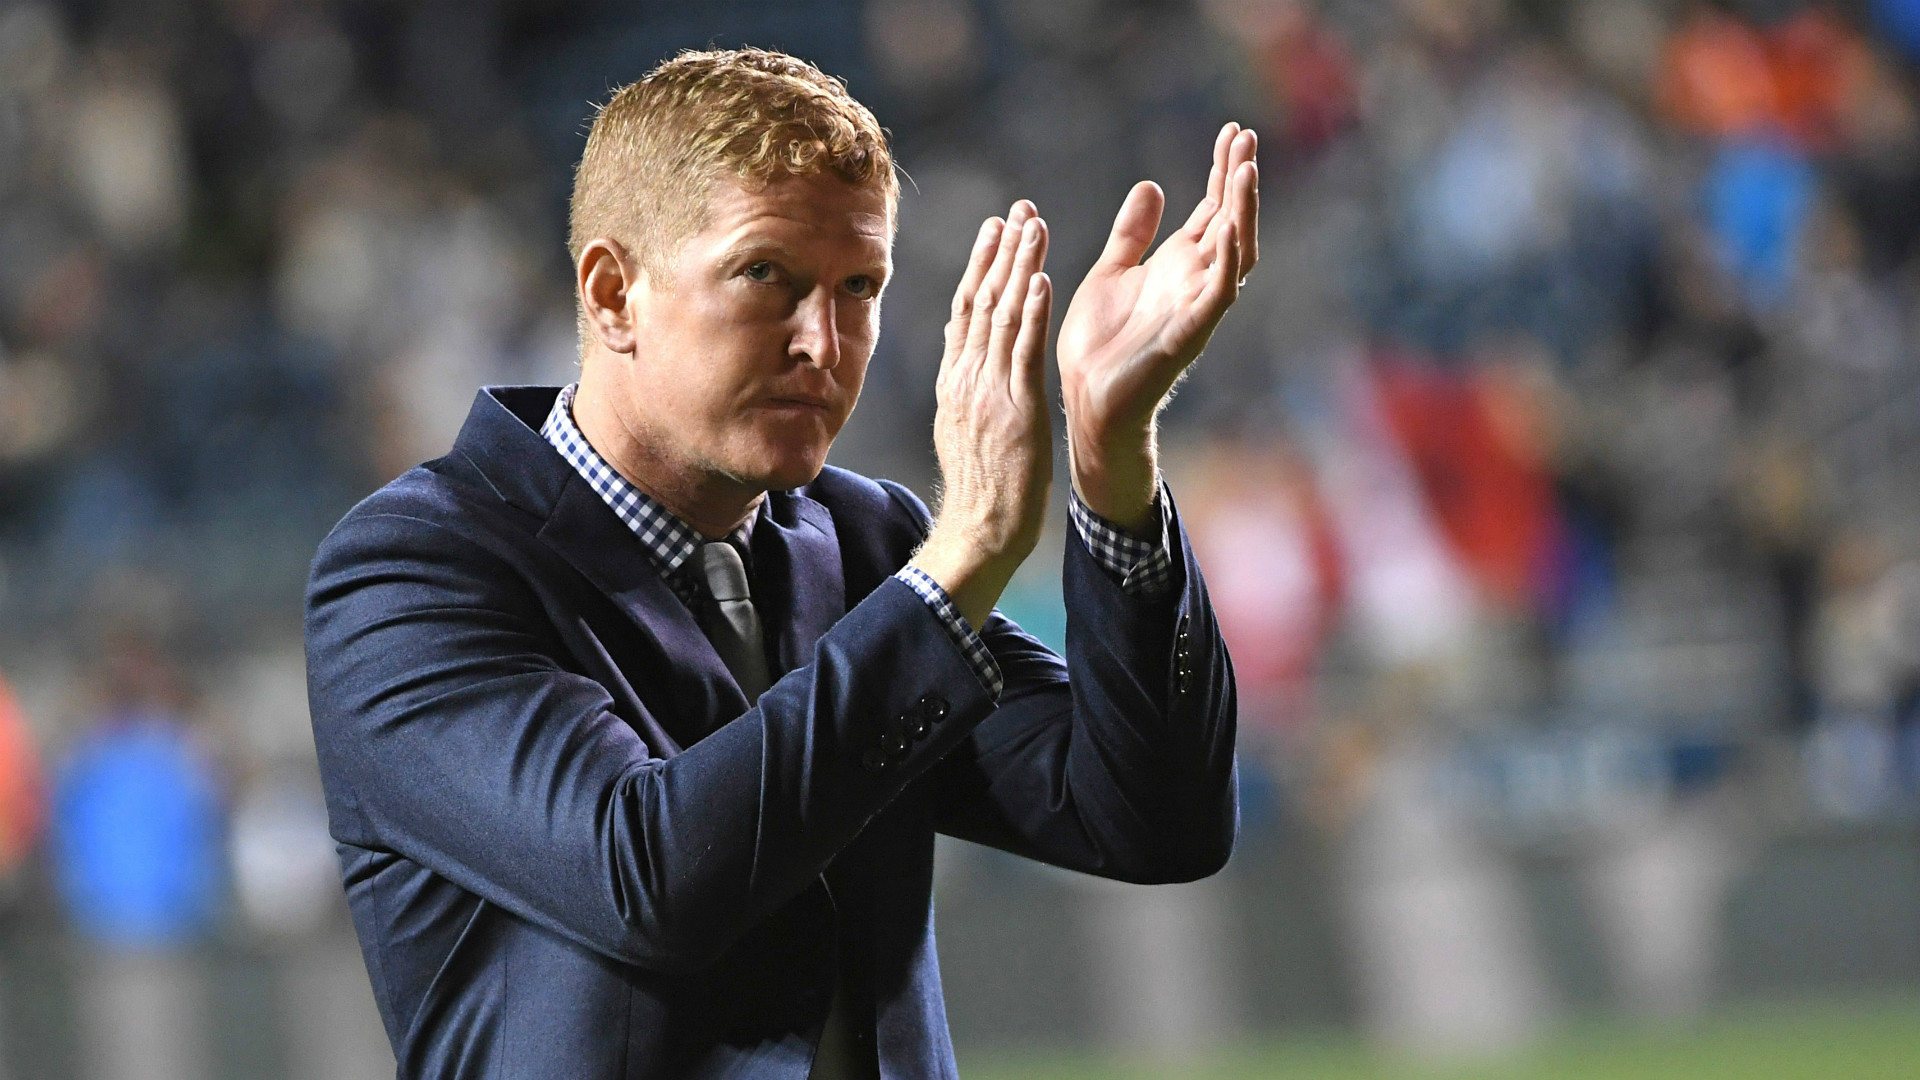 Jim Curtin Philadelphia Union